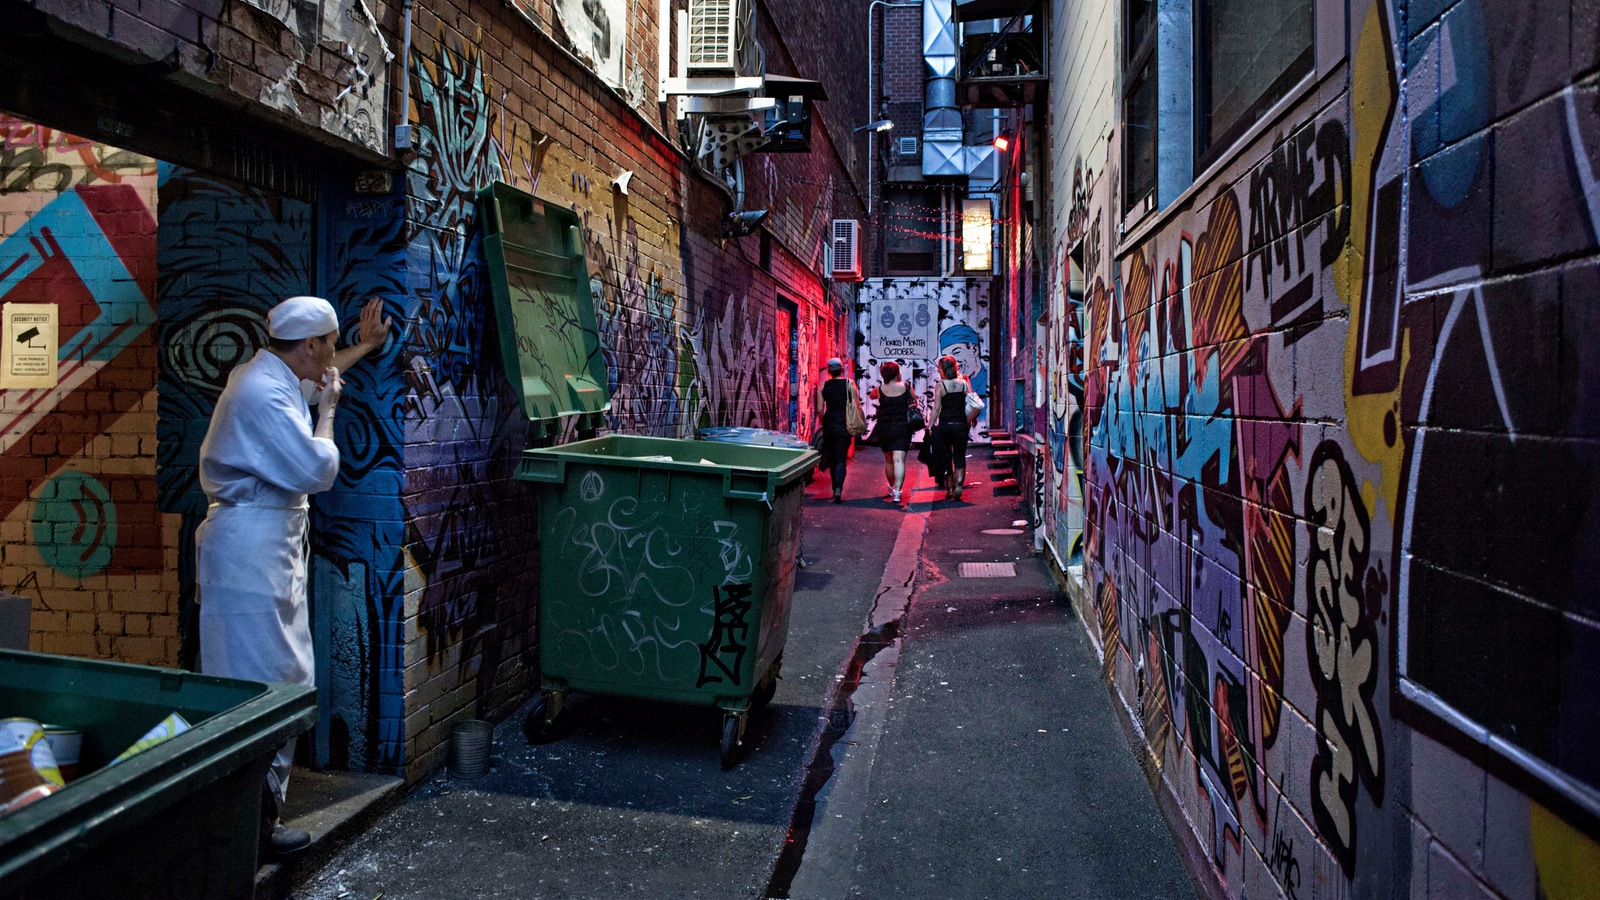 Three women walk towards a night club in Croft Alley, Jaime Murcia